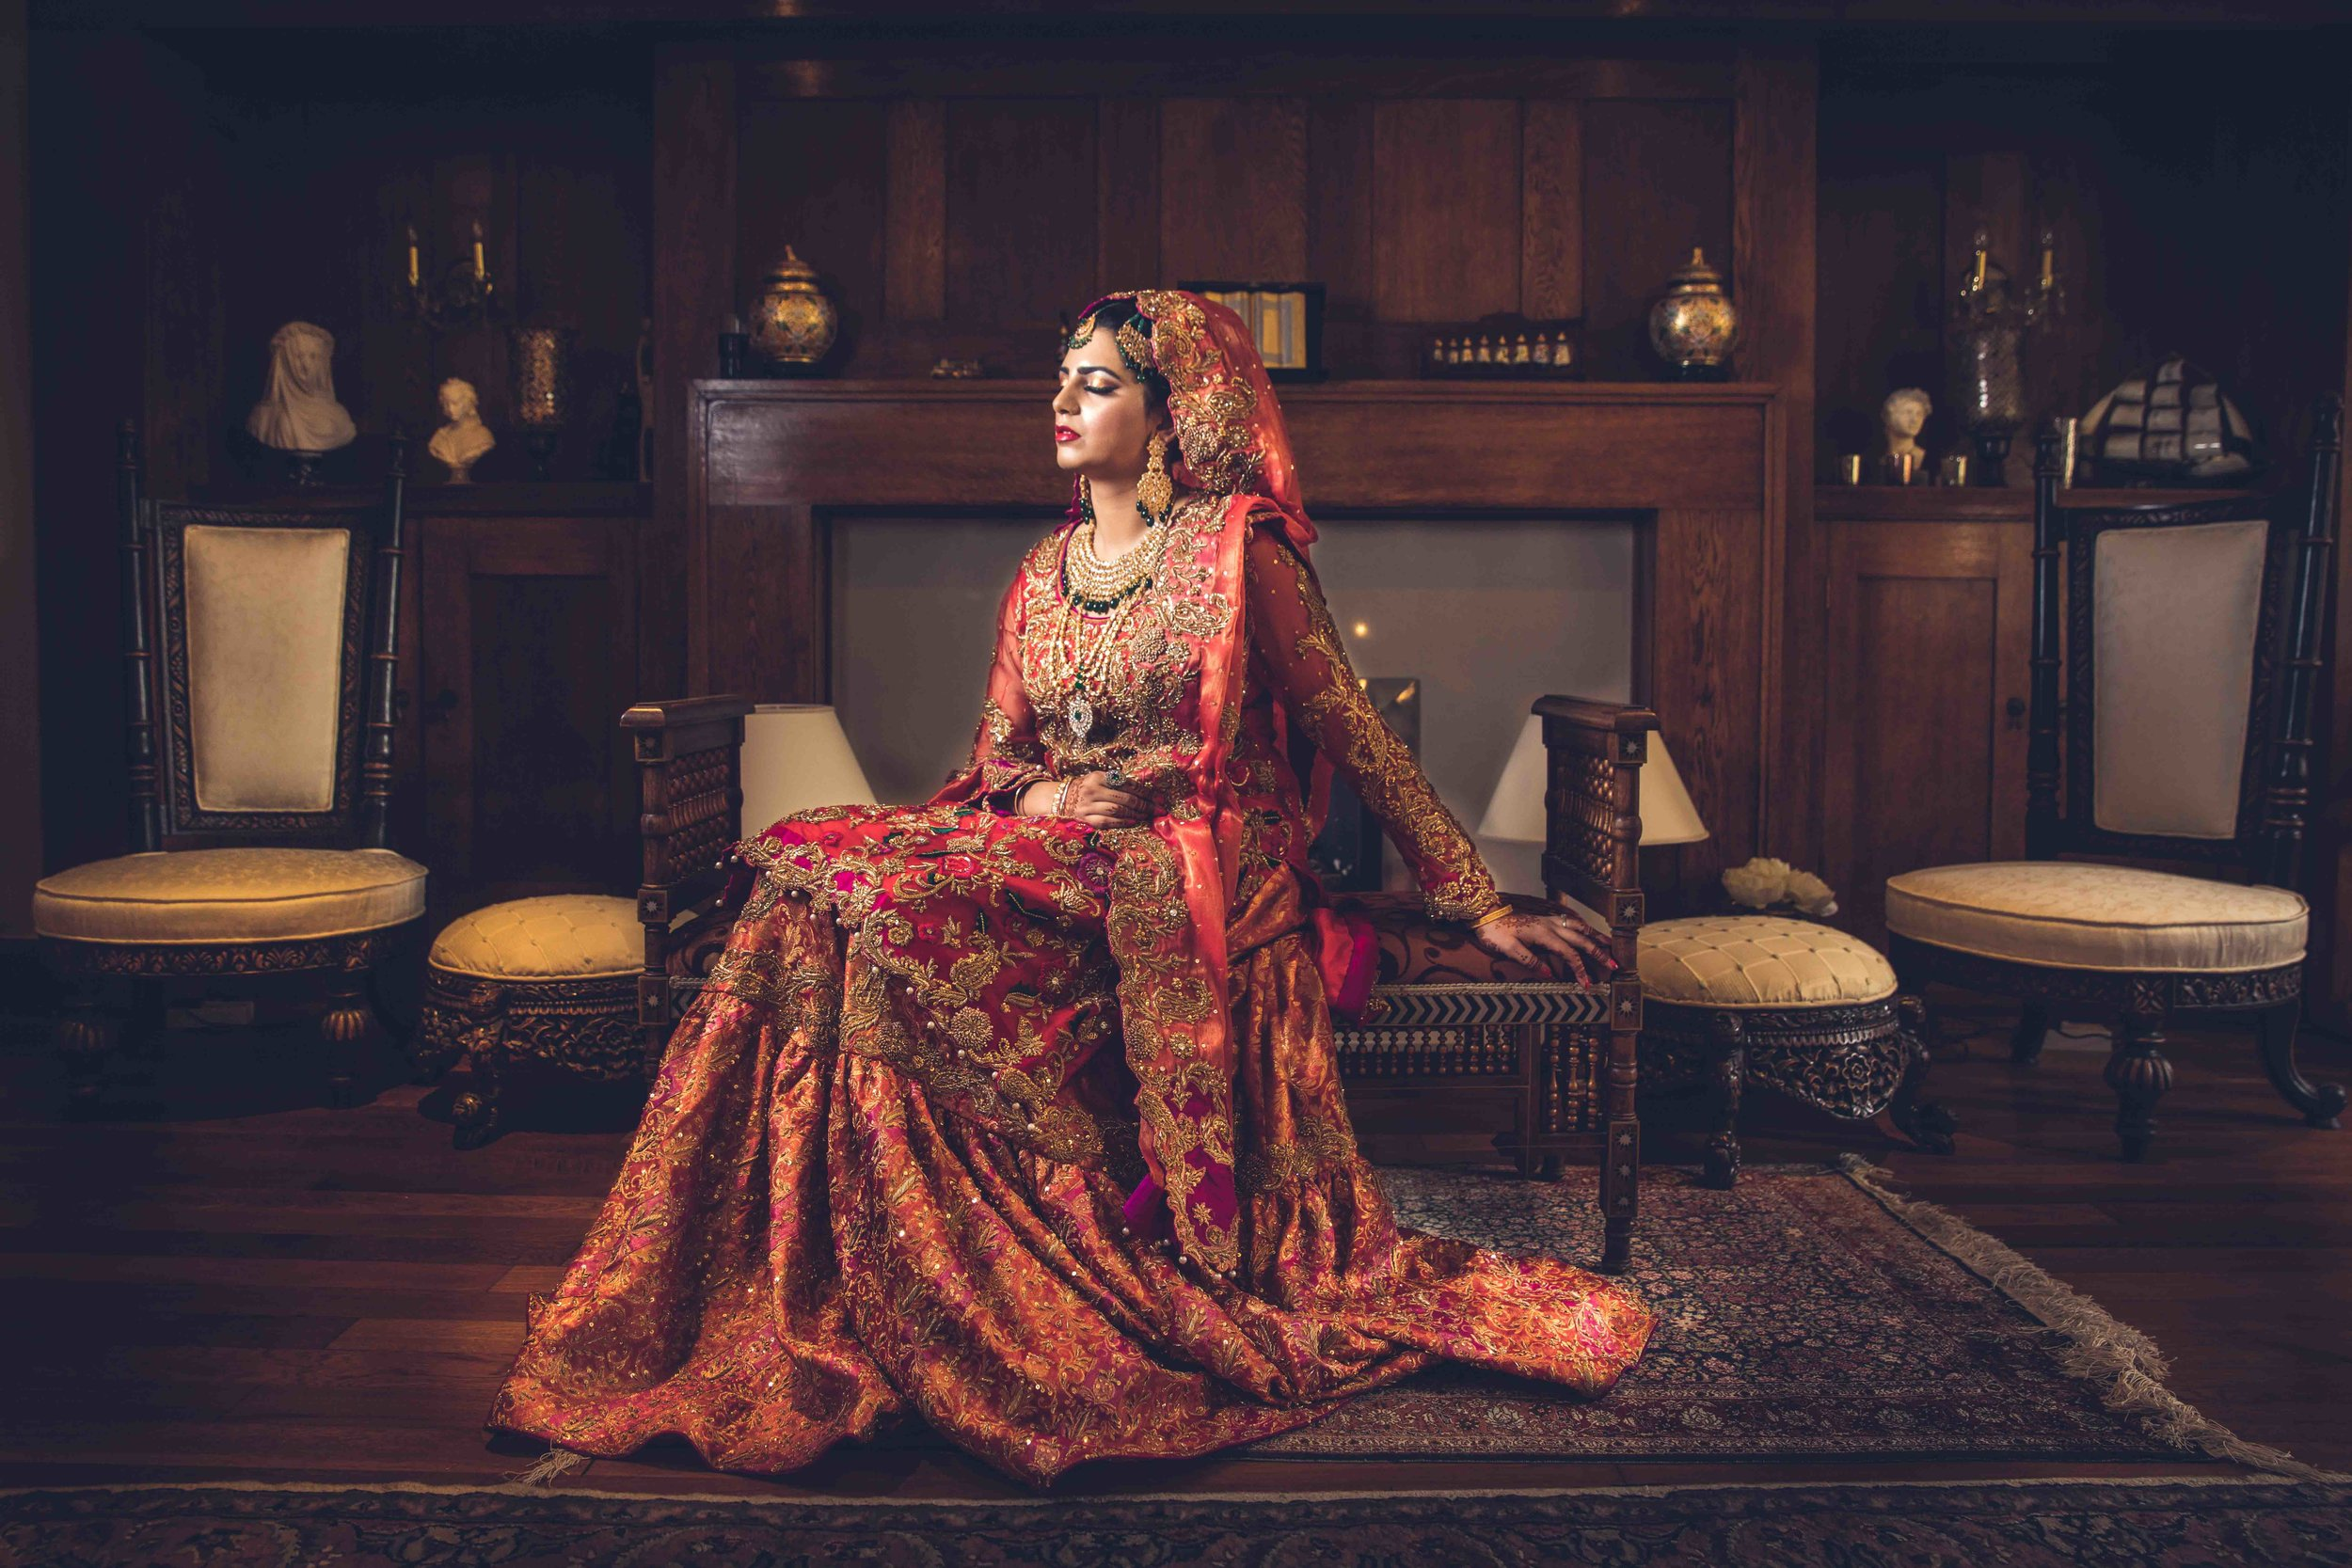 Opu Sultan Photography Asian wedding photography scotland edinburgh glasgow manchester birmingham london-90.jpg